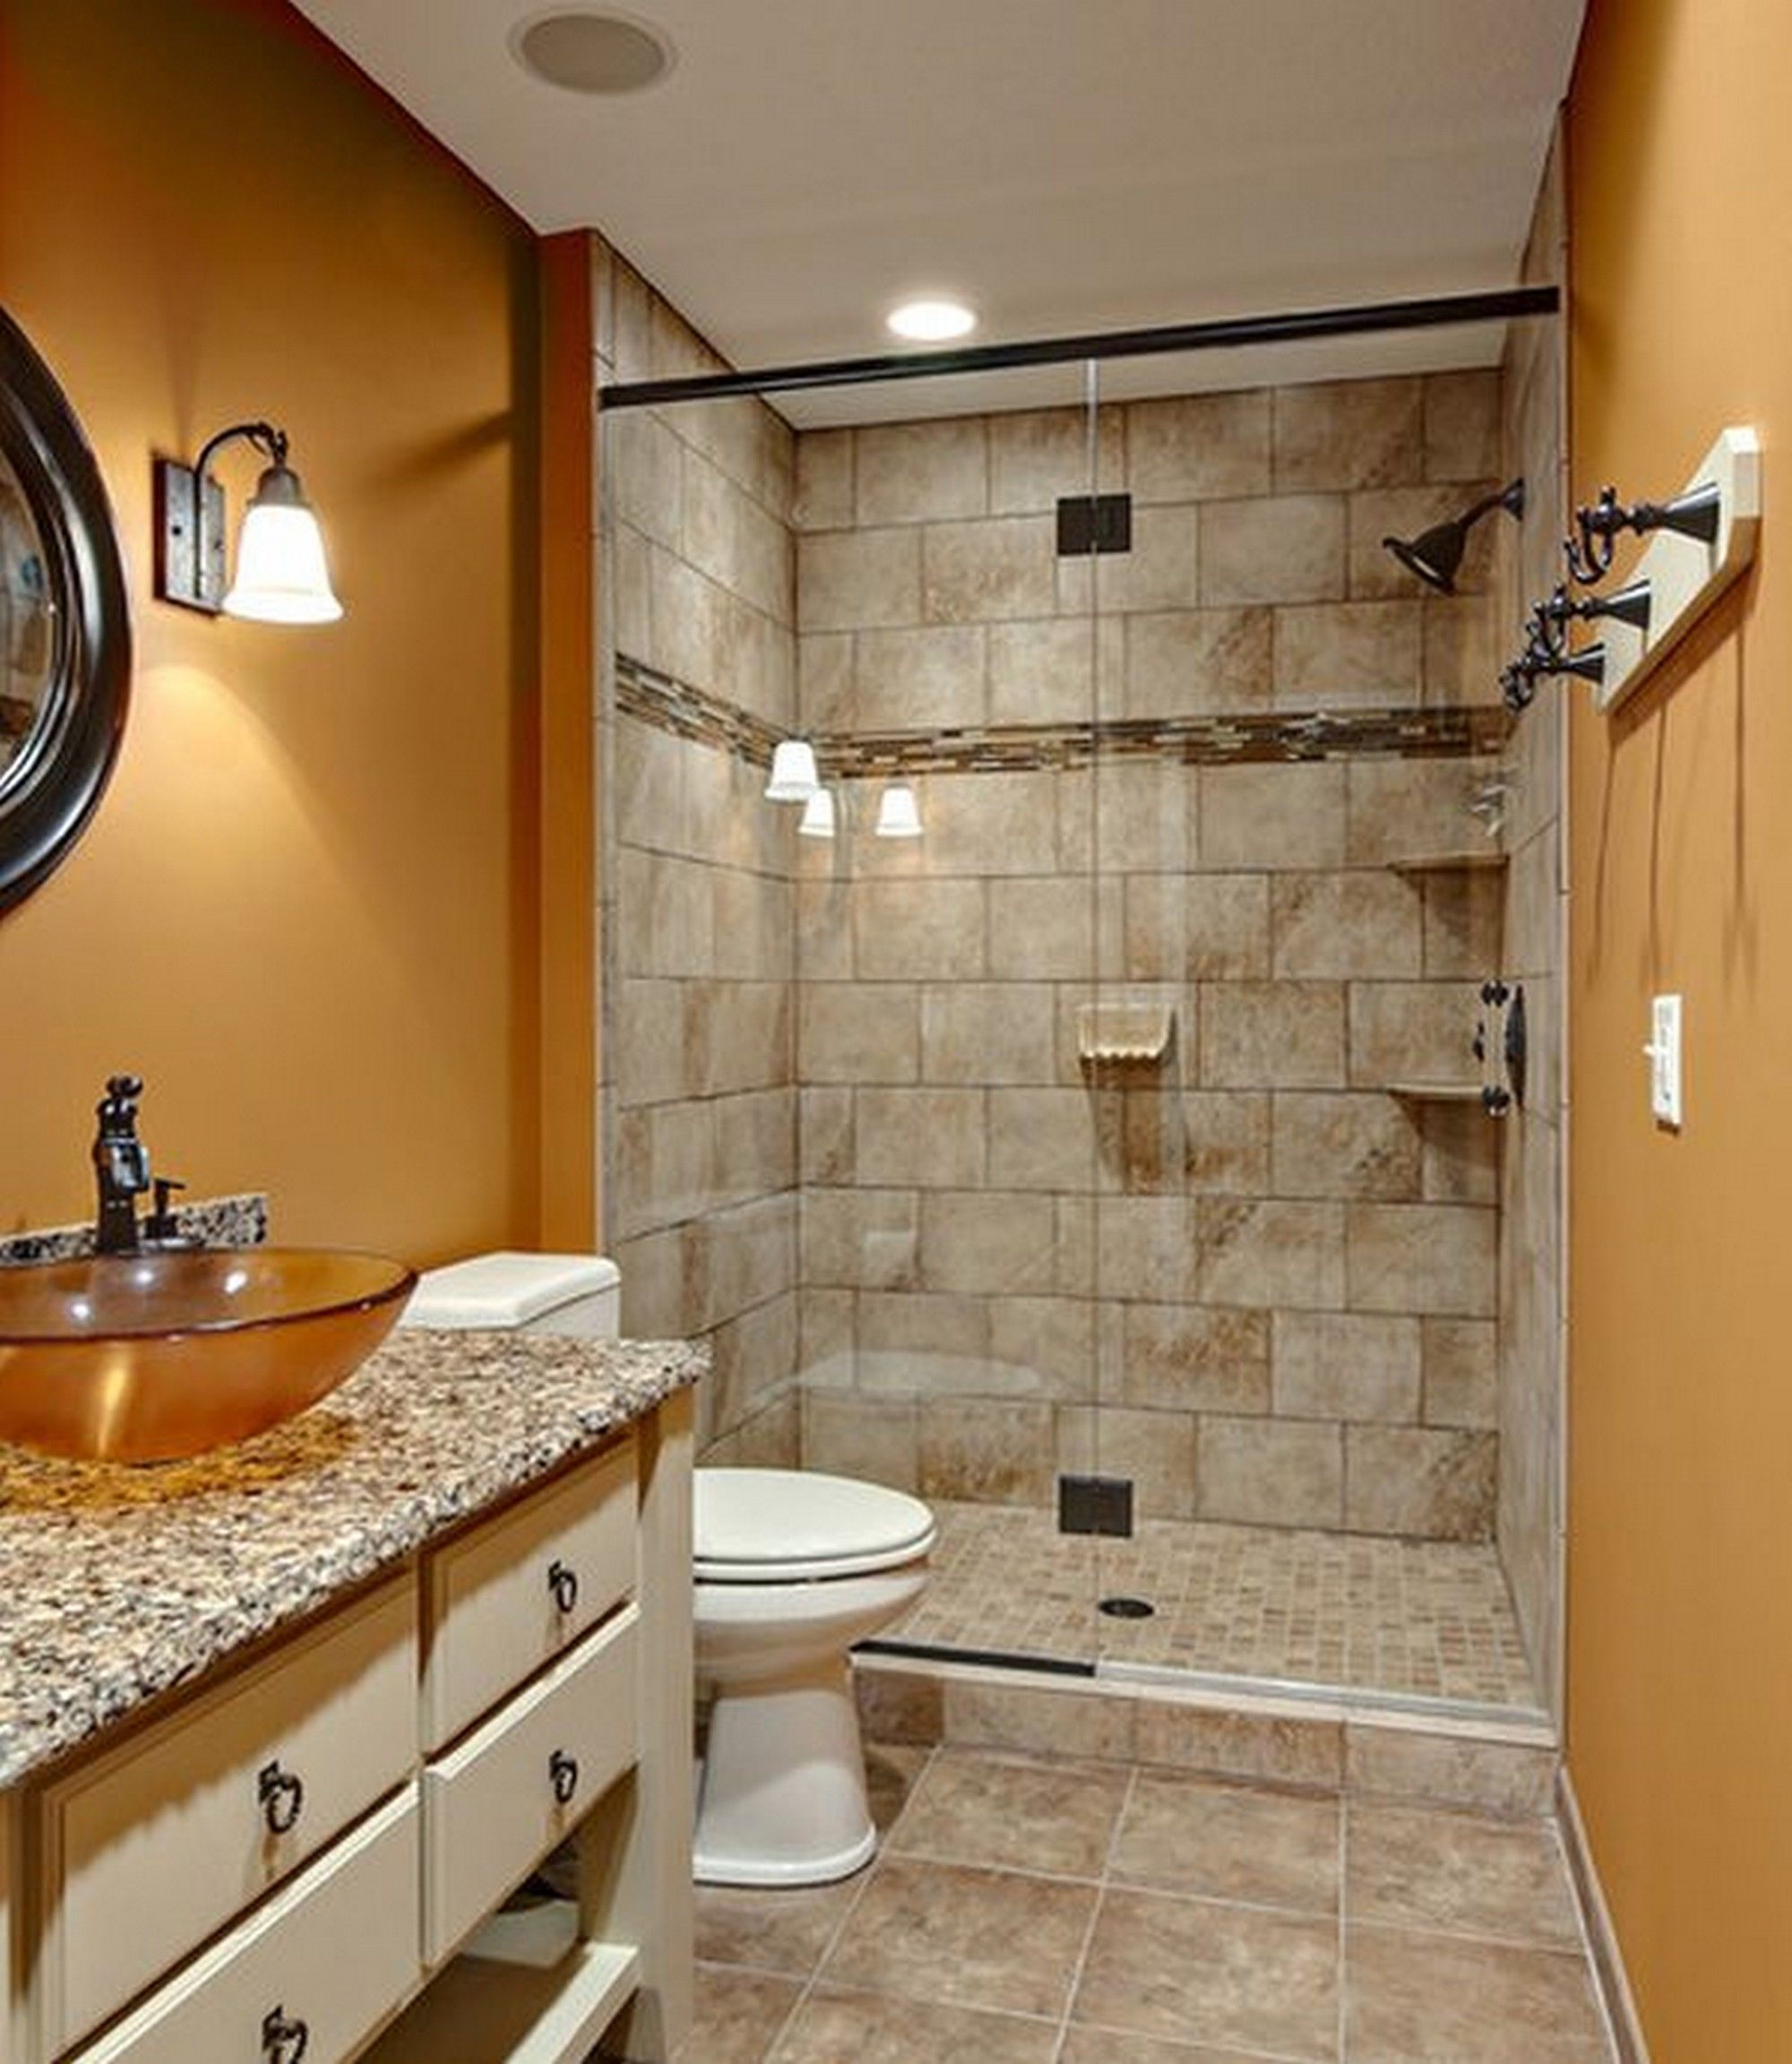 Small Bathroom Designs With Shower Only FcfL2yeuK | Home Decor | Pinterest  | Small Bathroom Designs, Small Bathroom And Bathroom Designs Idea